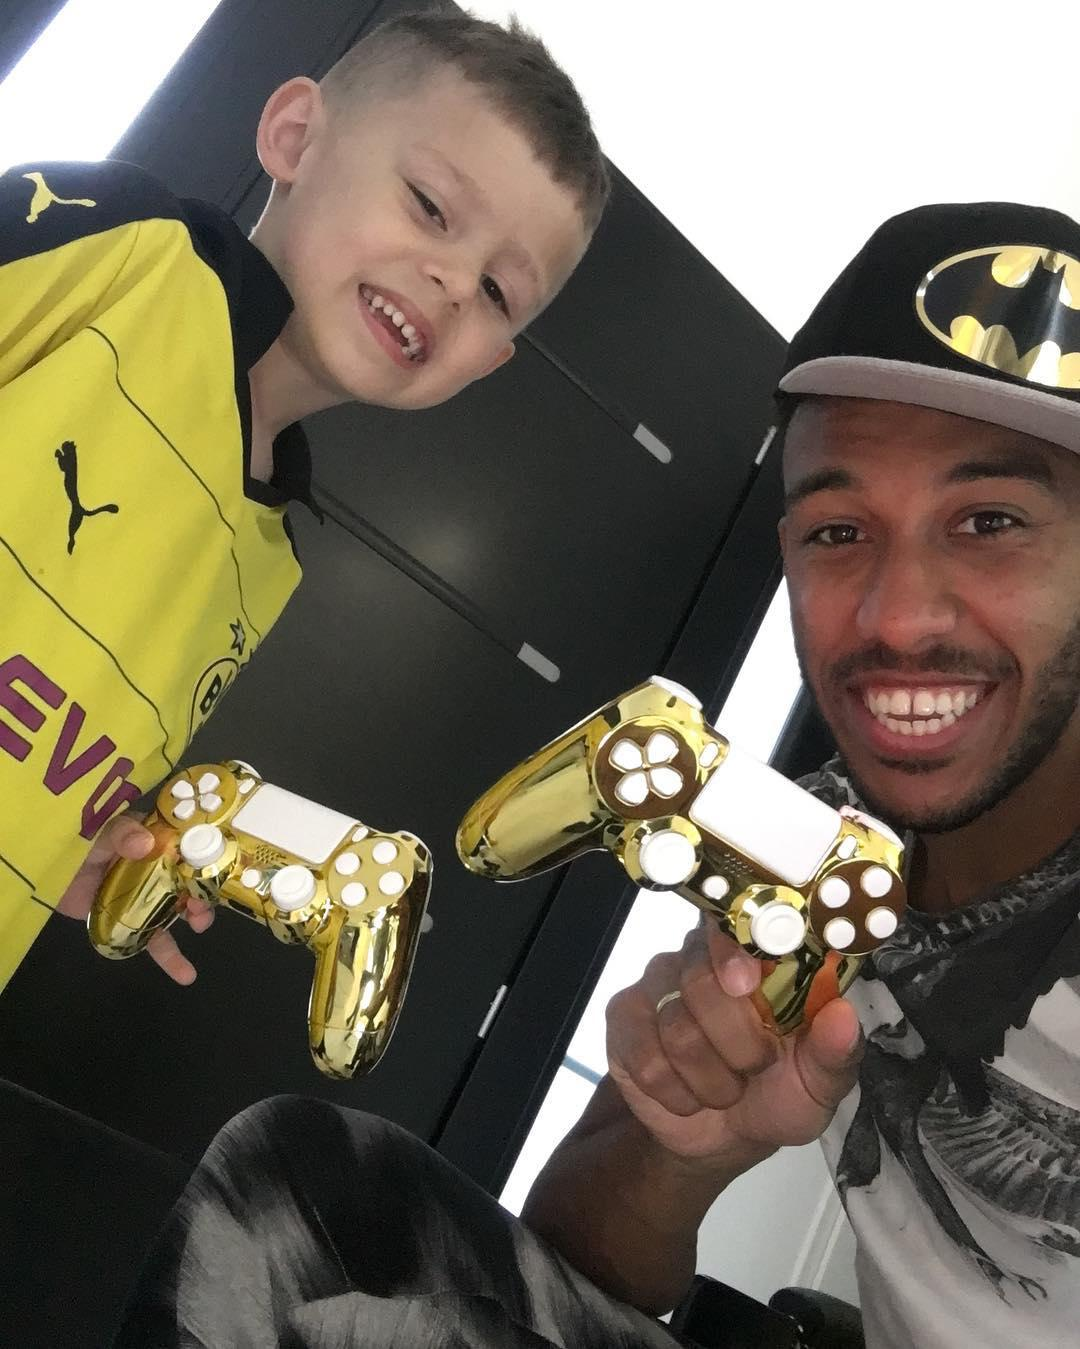 Pierre-Emerick Aubameyang has two kids, spoiling them to golden PlayStation controllers